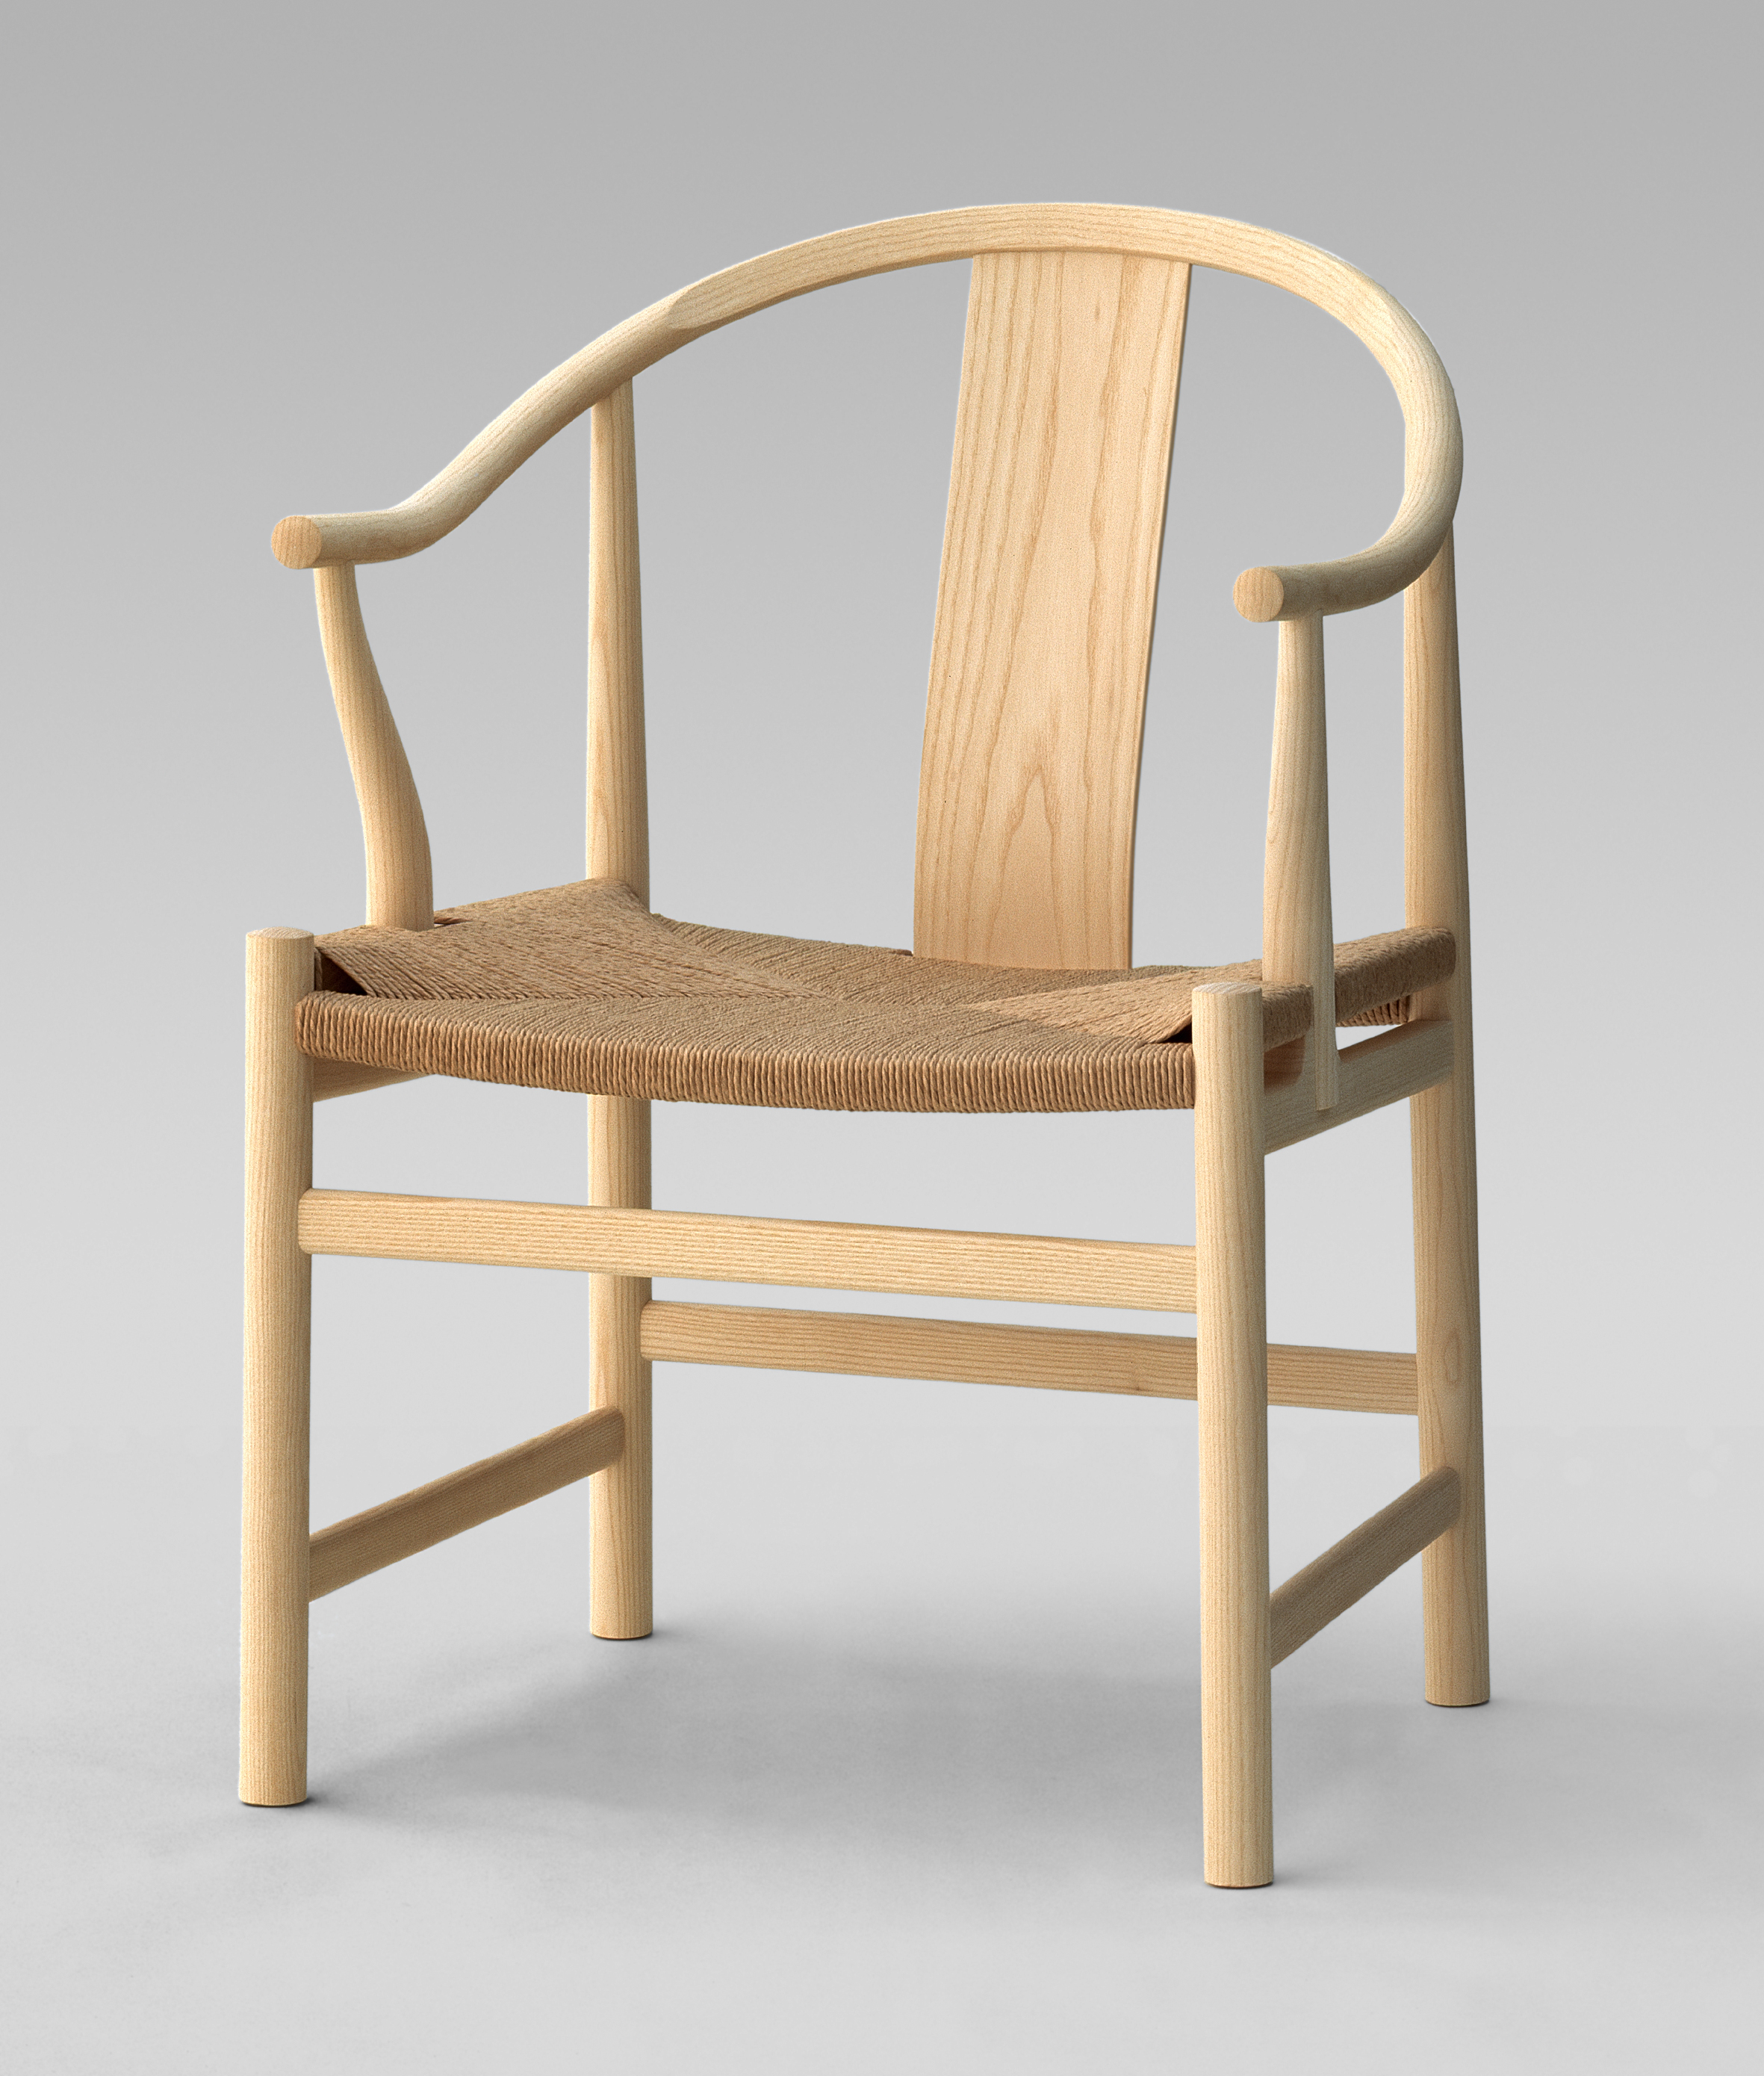 PP 56 / PP 66 The Chinese Chair